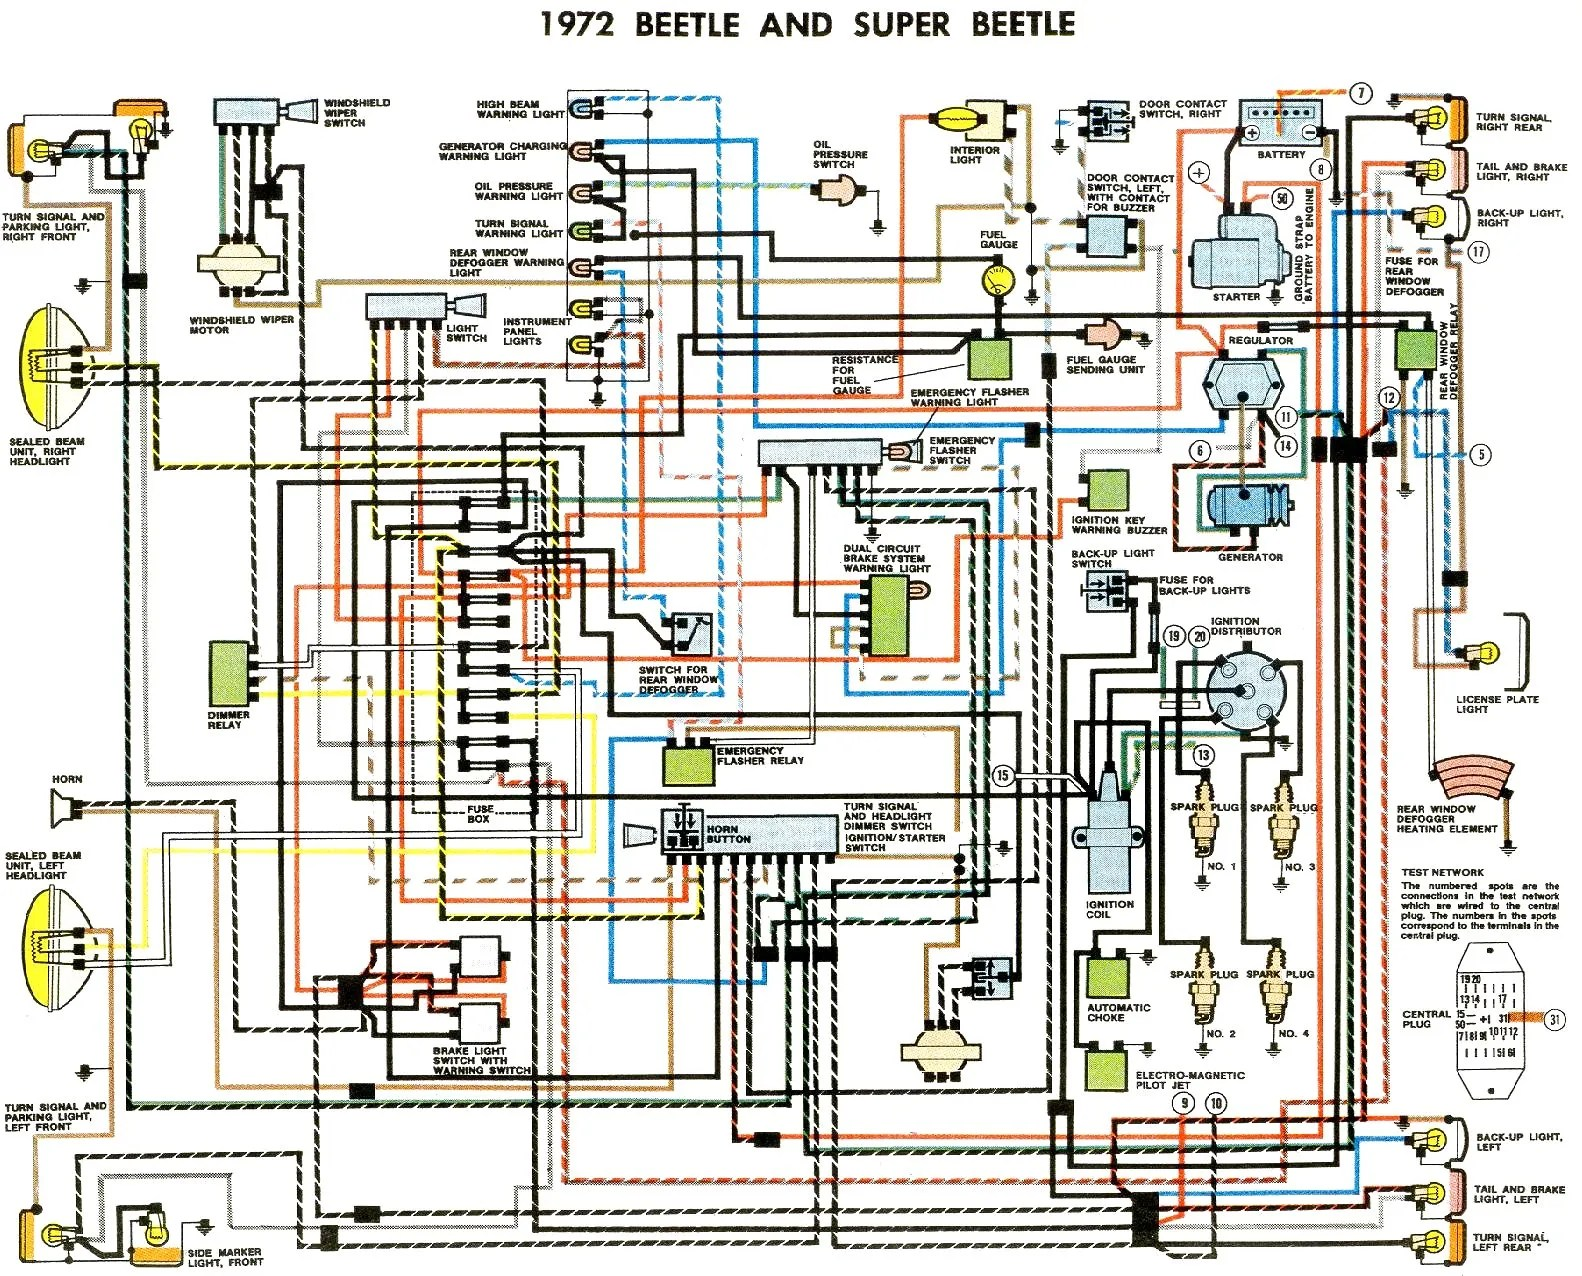 hight resolution of 1972 beetle wiring diagram